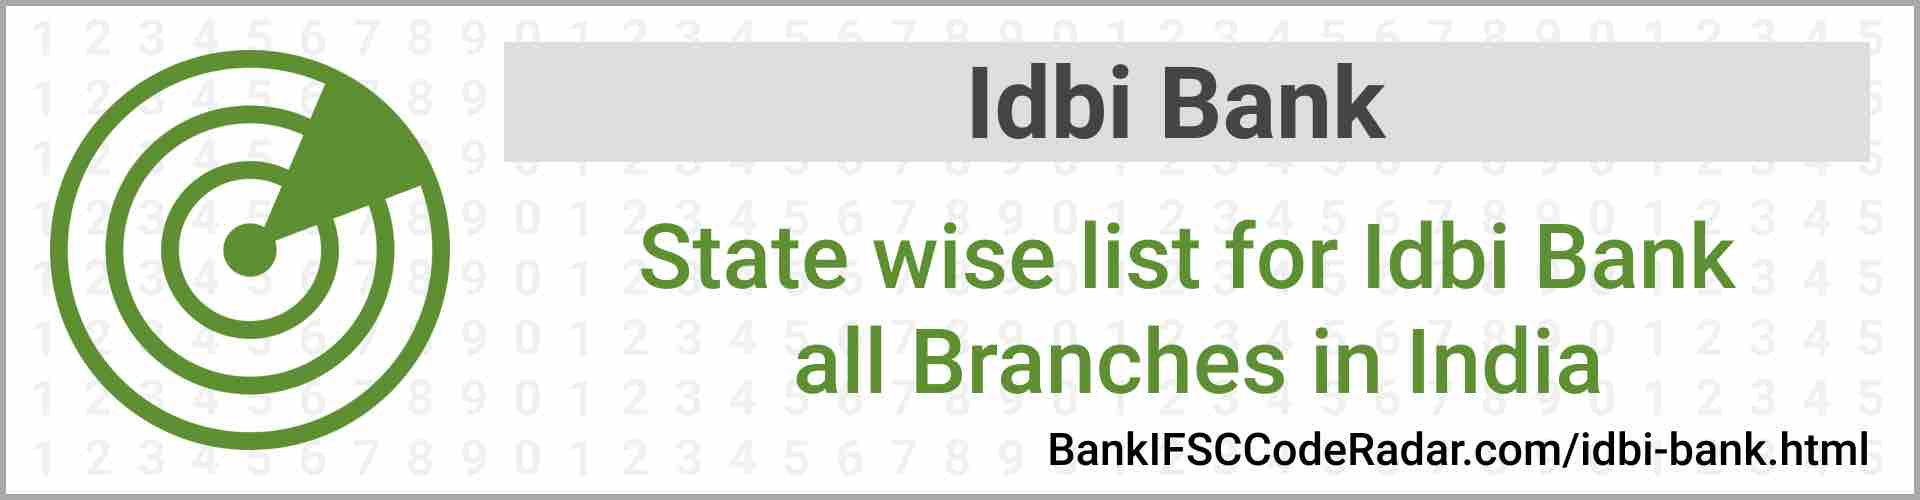 Idbi Bank All Branches India